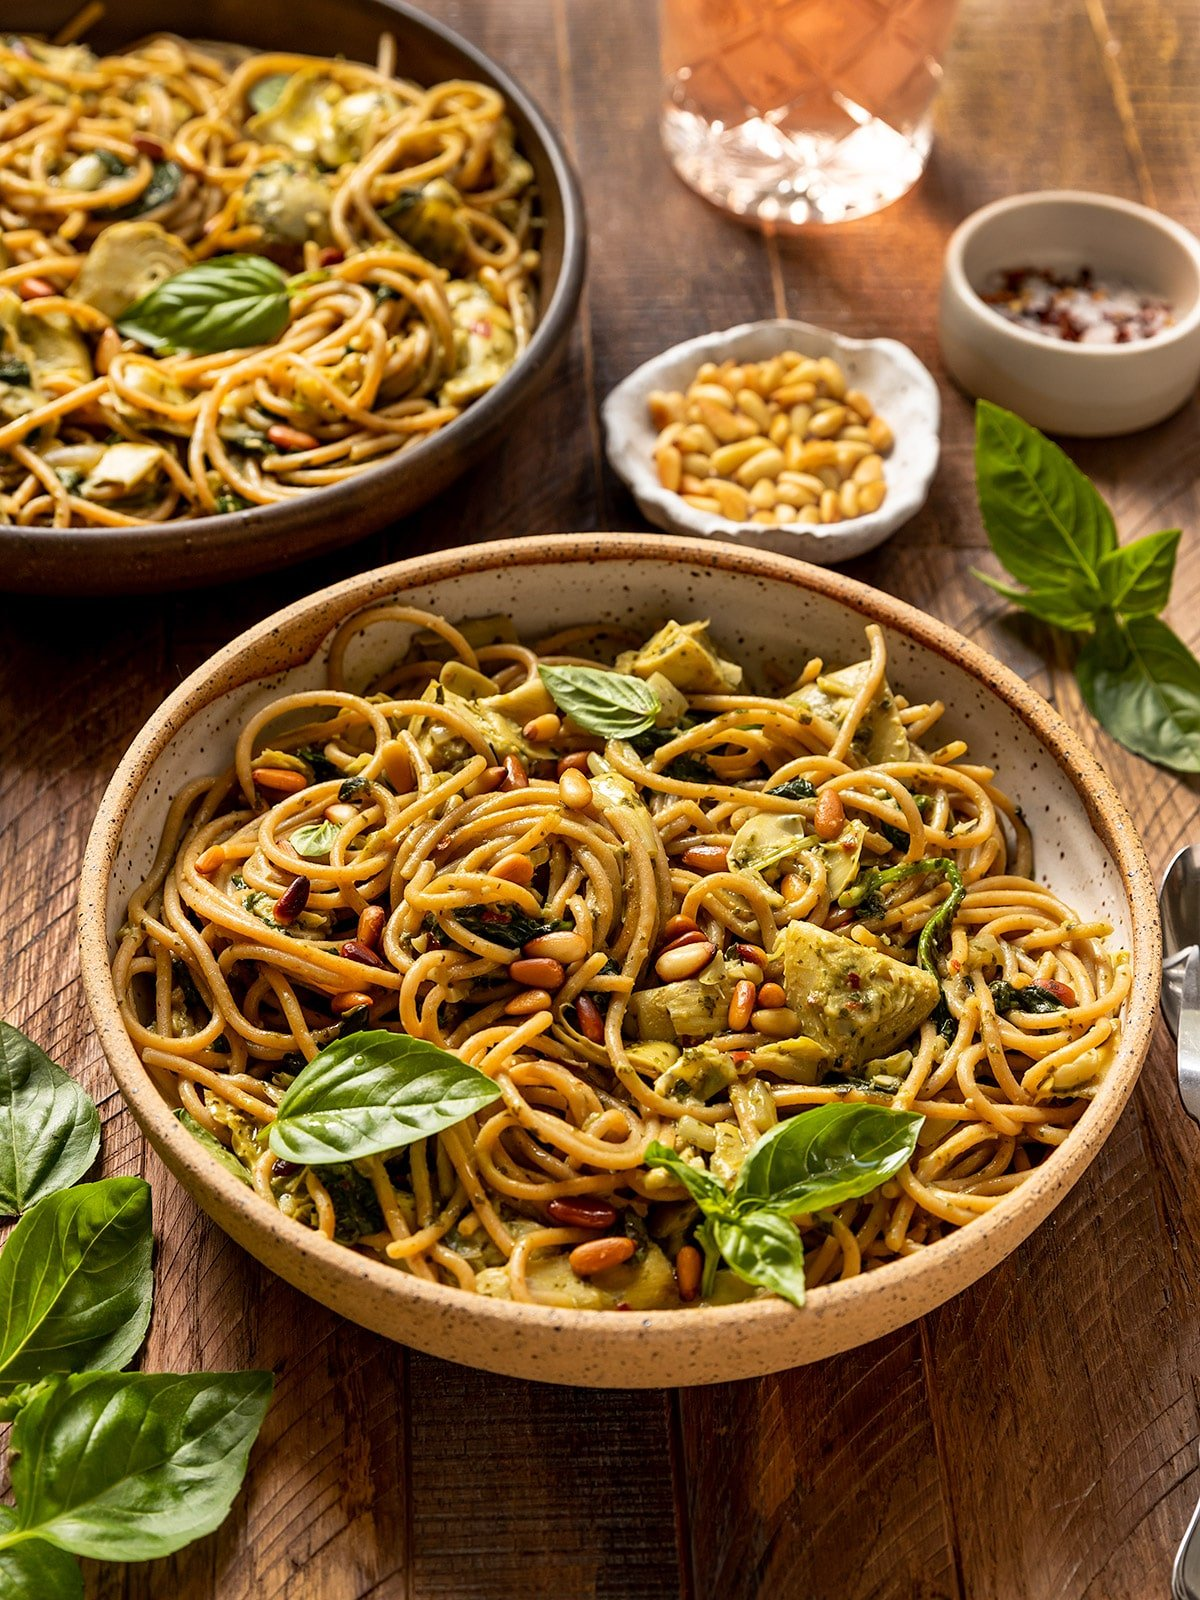 two bowls filled with linguine, basil sauce, artichokes, spinach, and topped with toasted pine nuts and fresh basil